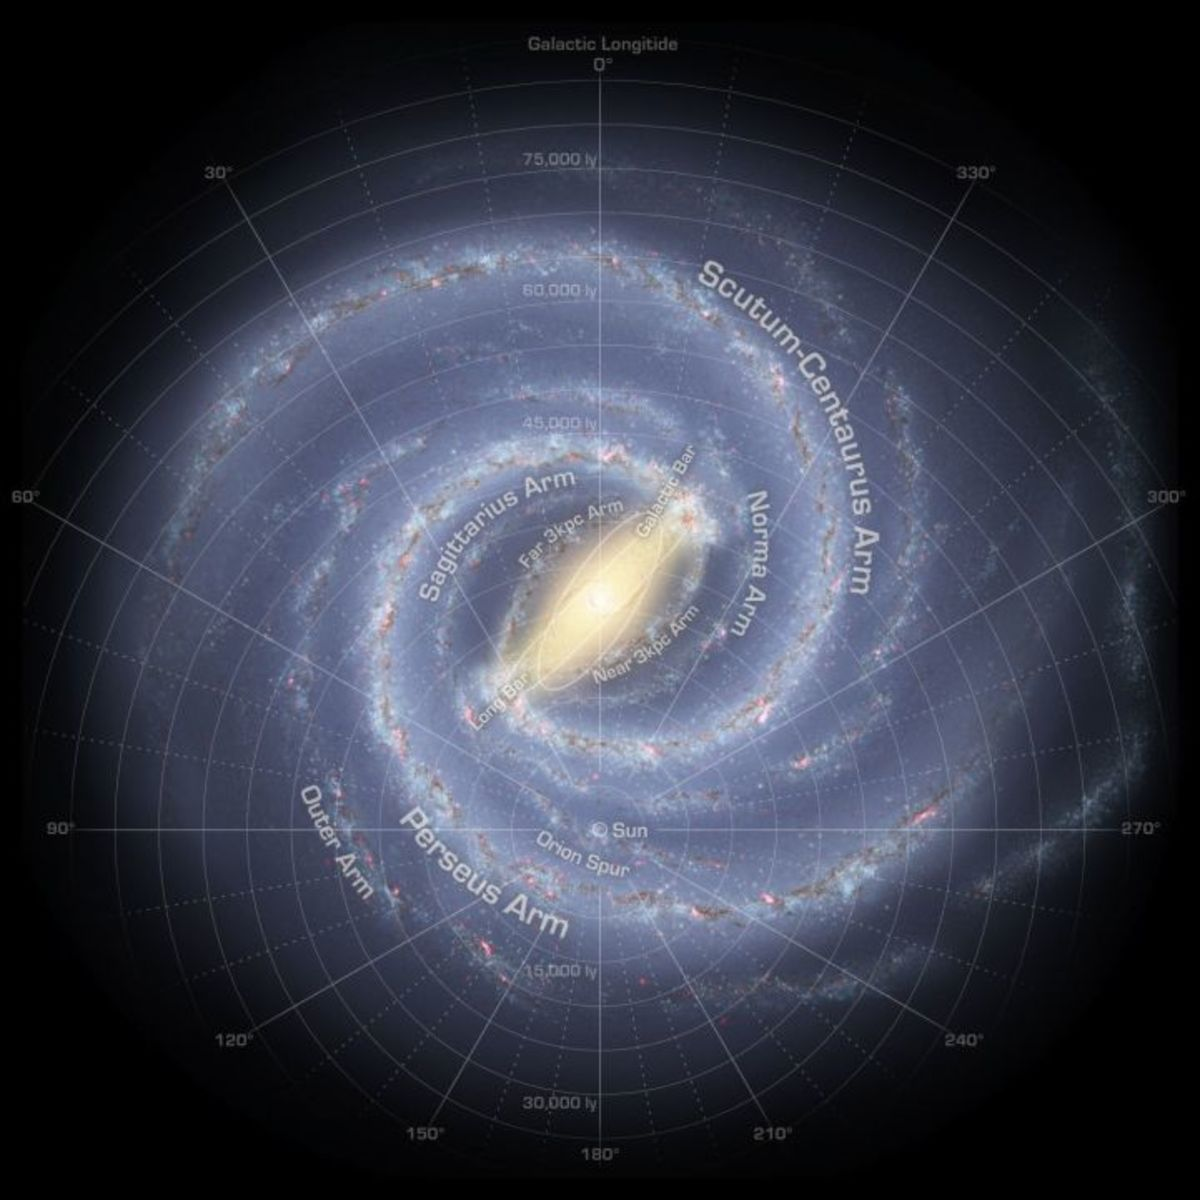 This over view shows the spiraling arms of our local galaxy and how our solar system interacts with it, as it orbits the central sun Alcyone in the Pleiades star system.